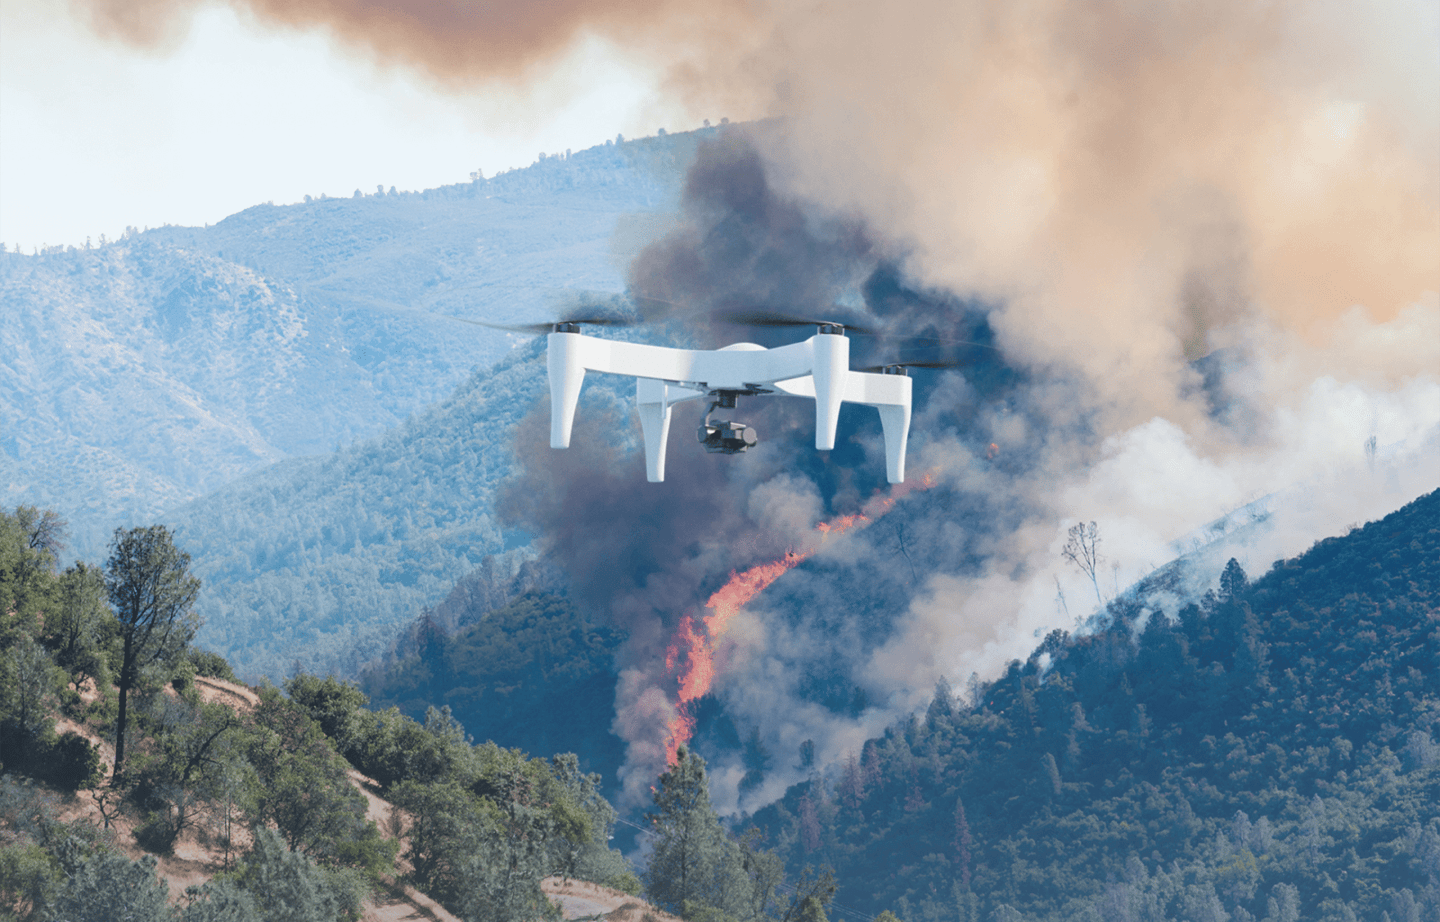 Impossible Aerospace has already started selling its US-1 long range drone to firefighters, police departments and search and rescue teams ahead of more general availability in Q4 2018